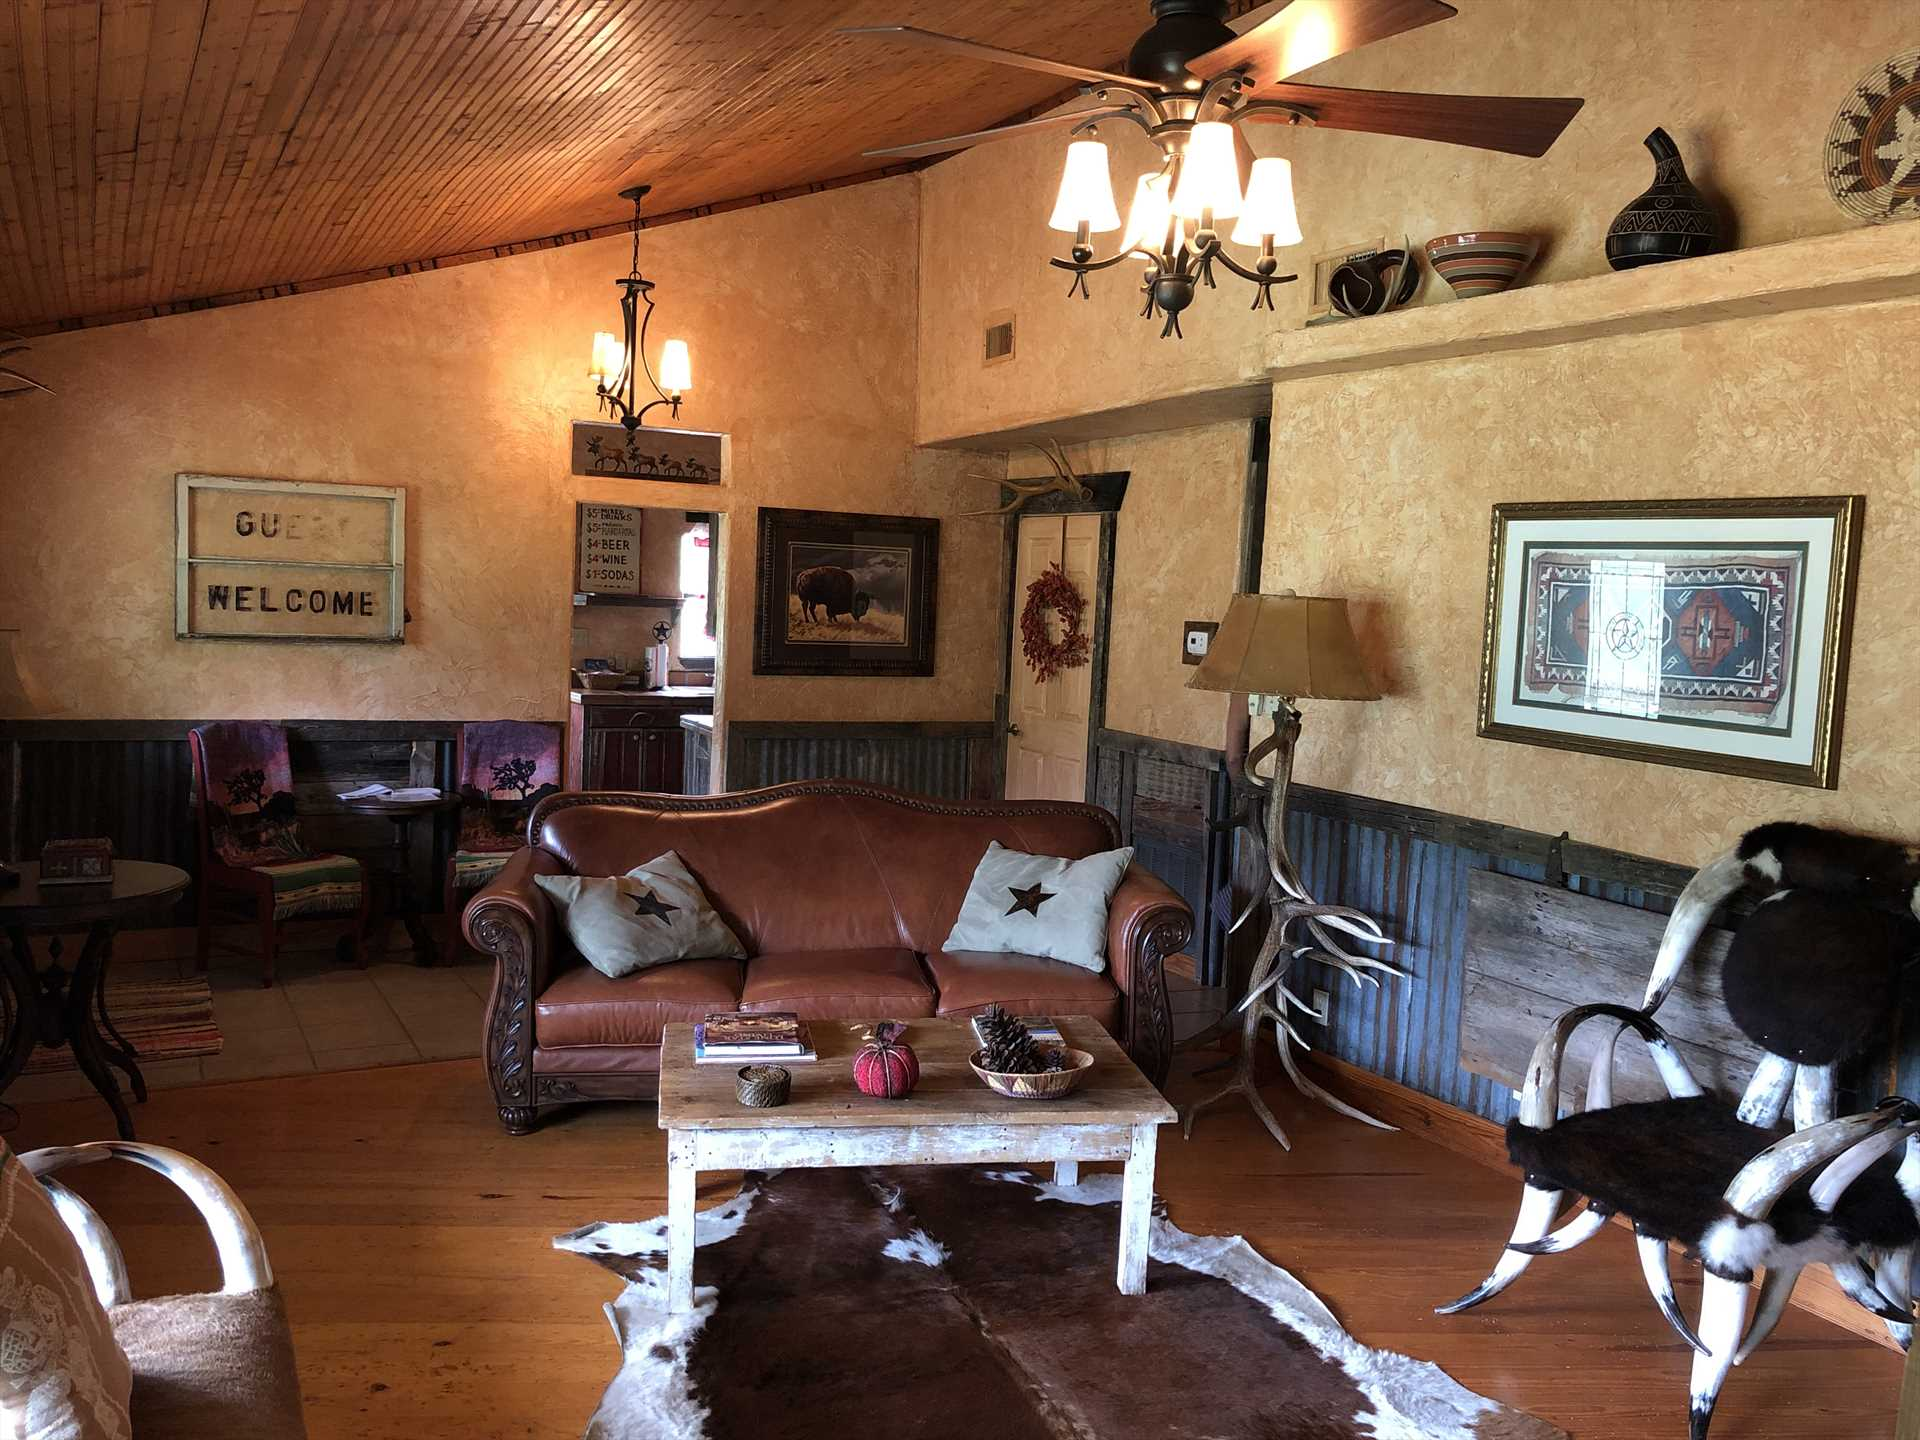 Climate-controlled, with beautiful woodwork and country decor...picture your crew in all this space!